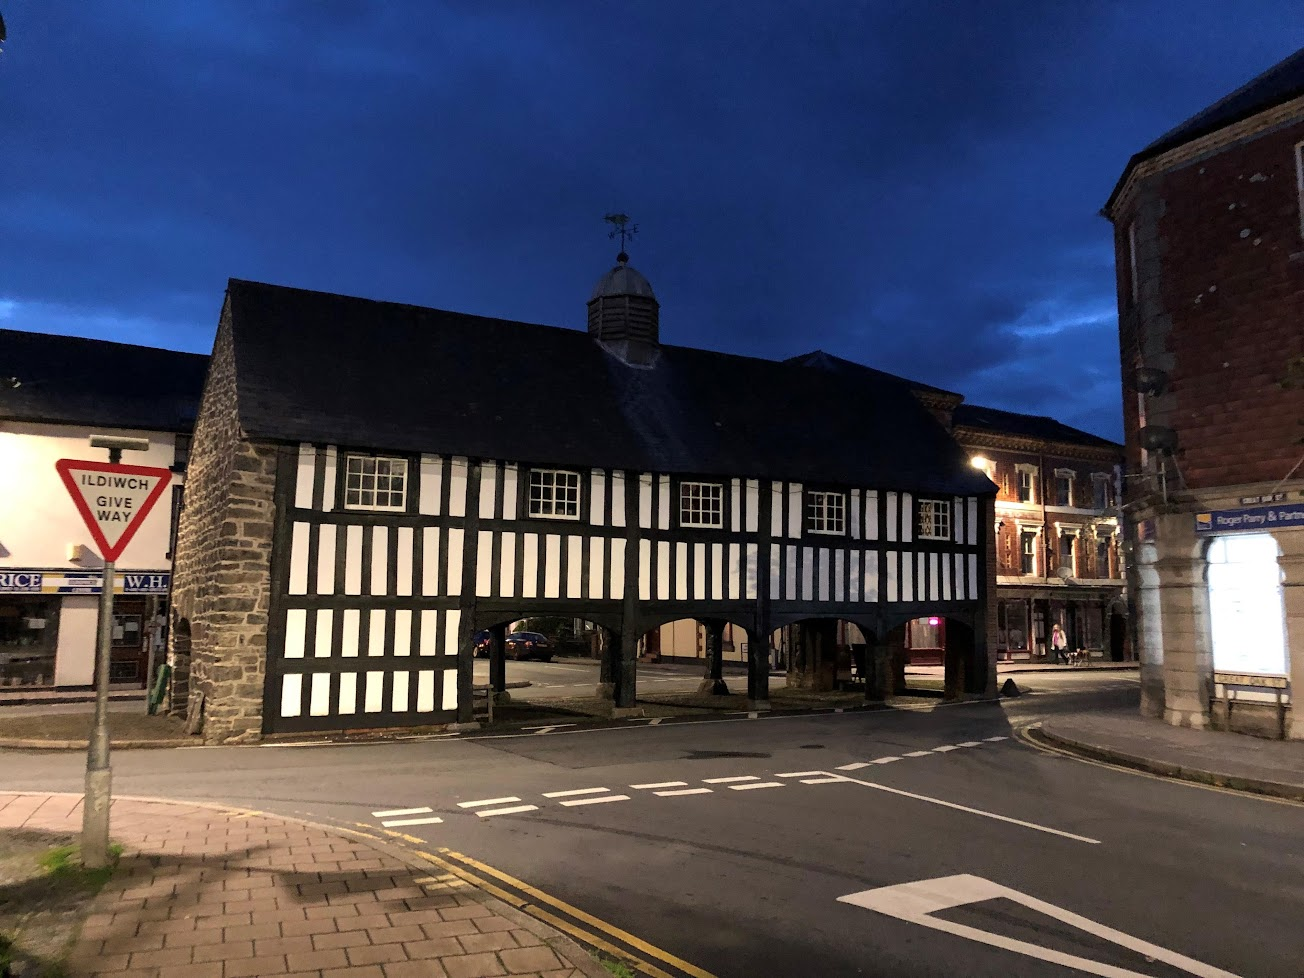 Legal challenge planned over historic market hall